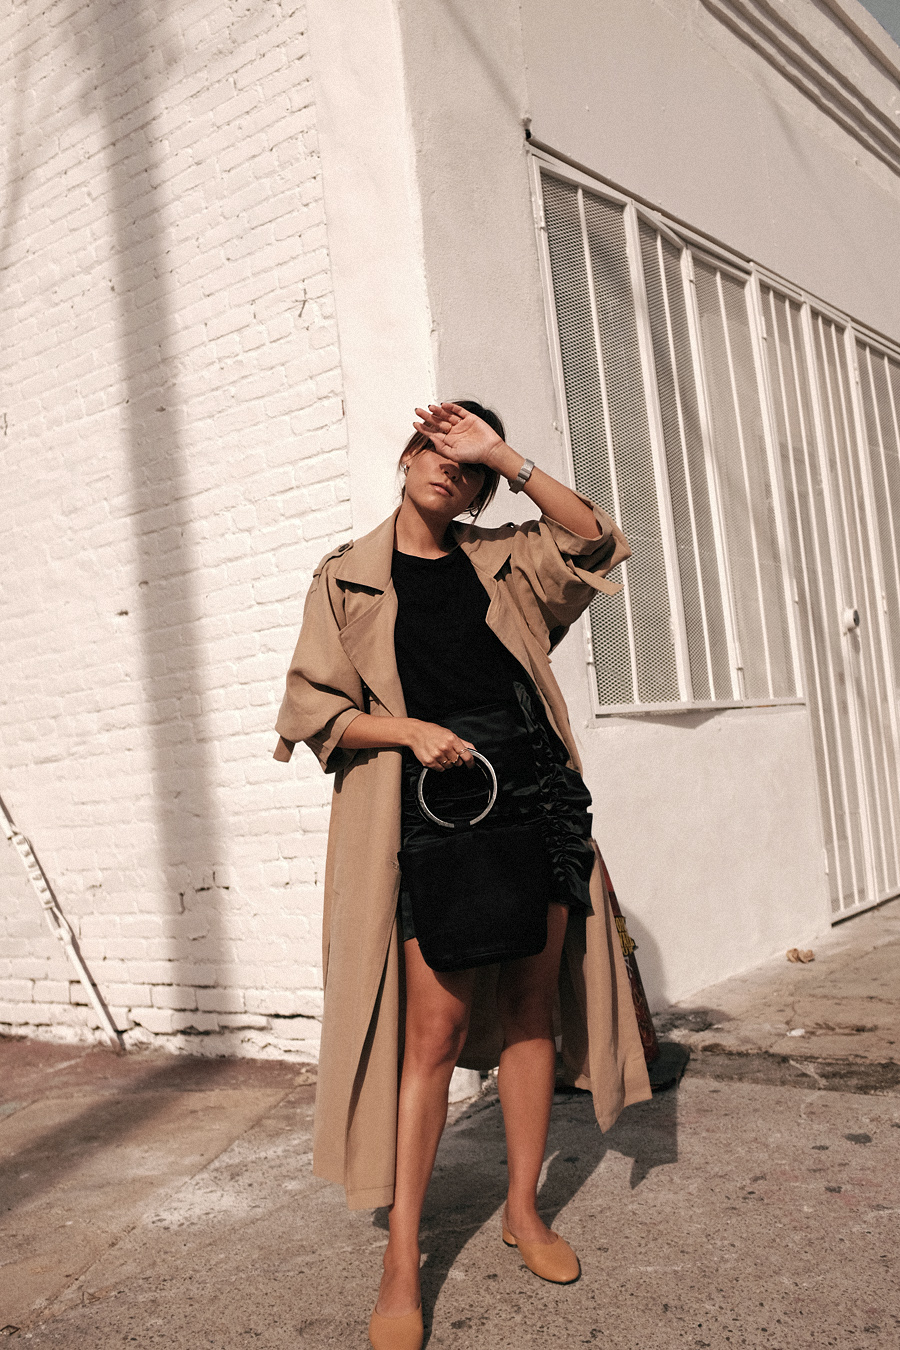 Outfit: Trenchmissing. Nisi is wearing: Oversized Trenchcoat, Simon Miller Bonsai bag, ruffled skirt, mules, black t-shirt